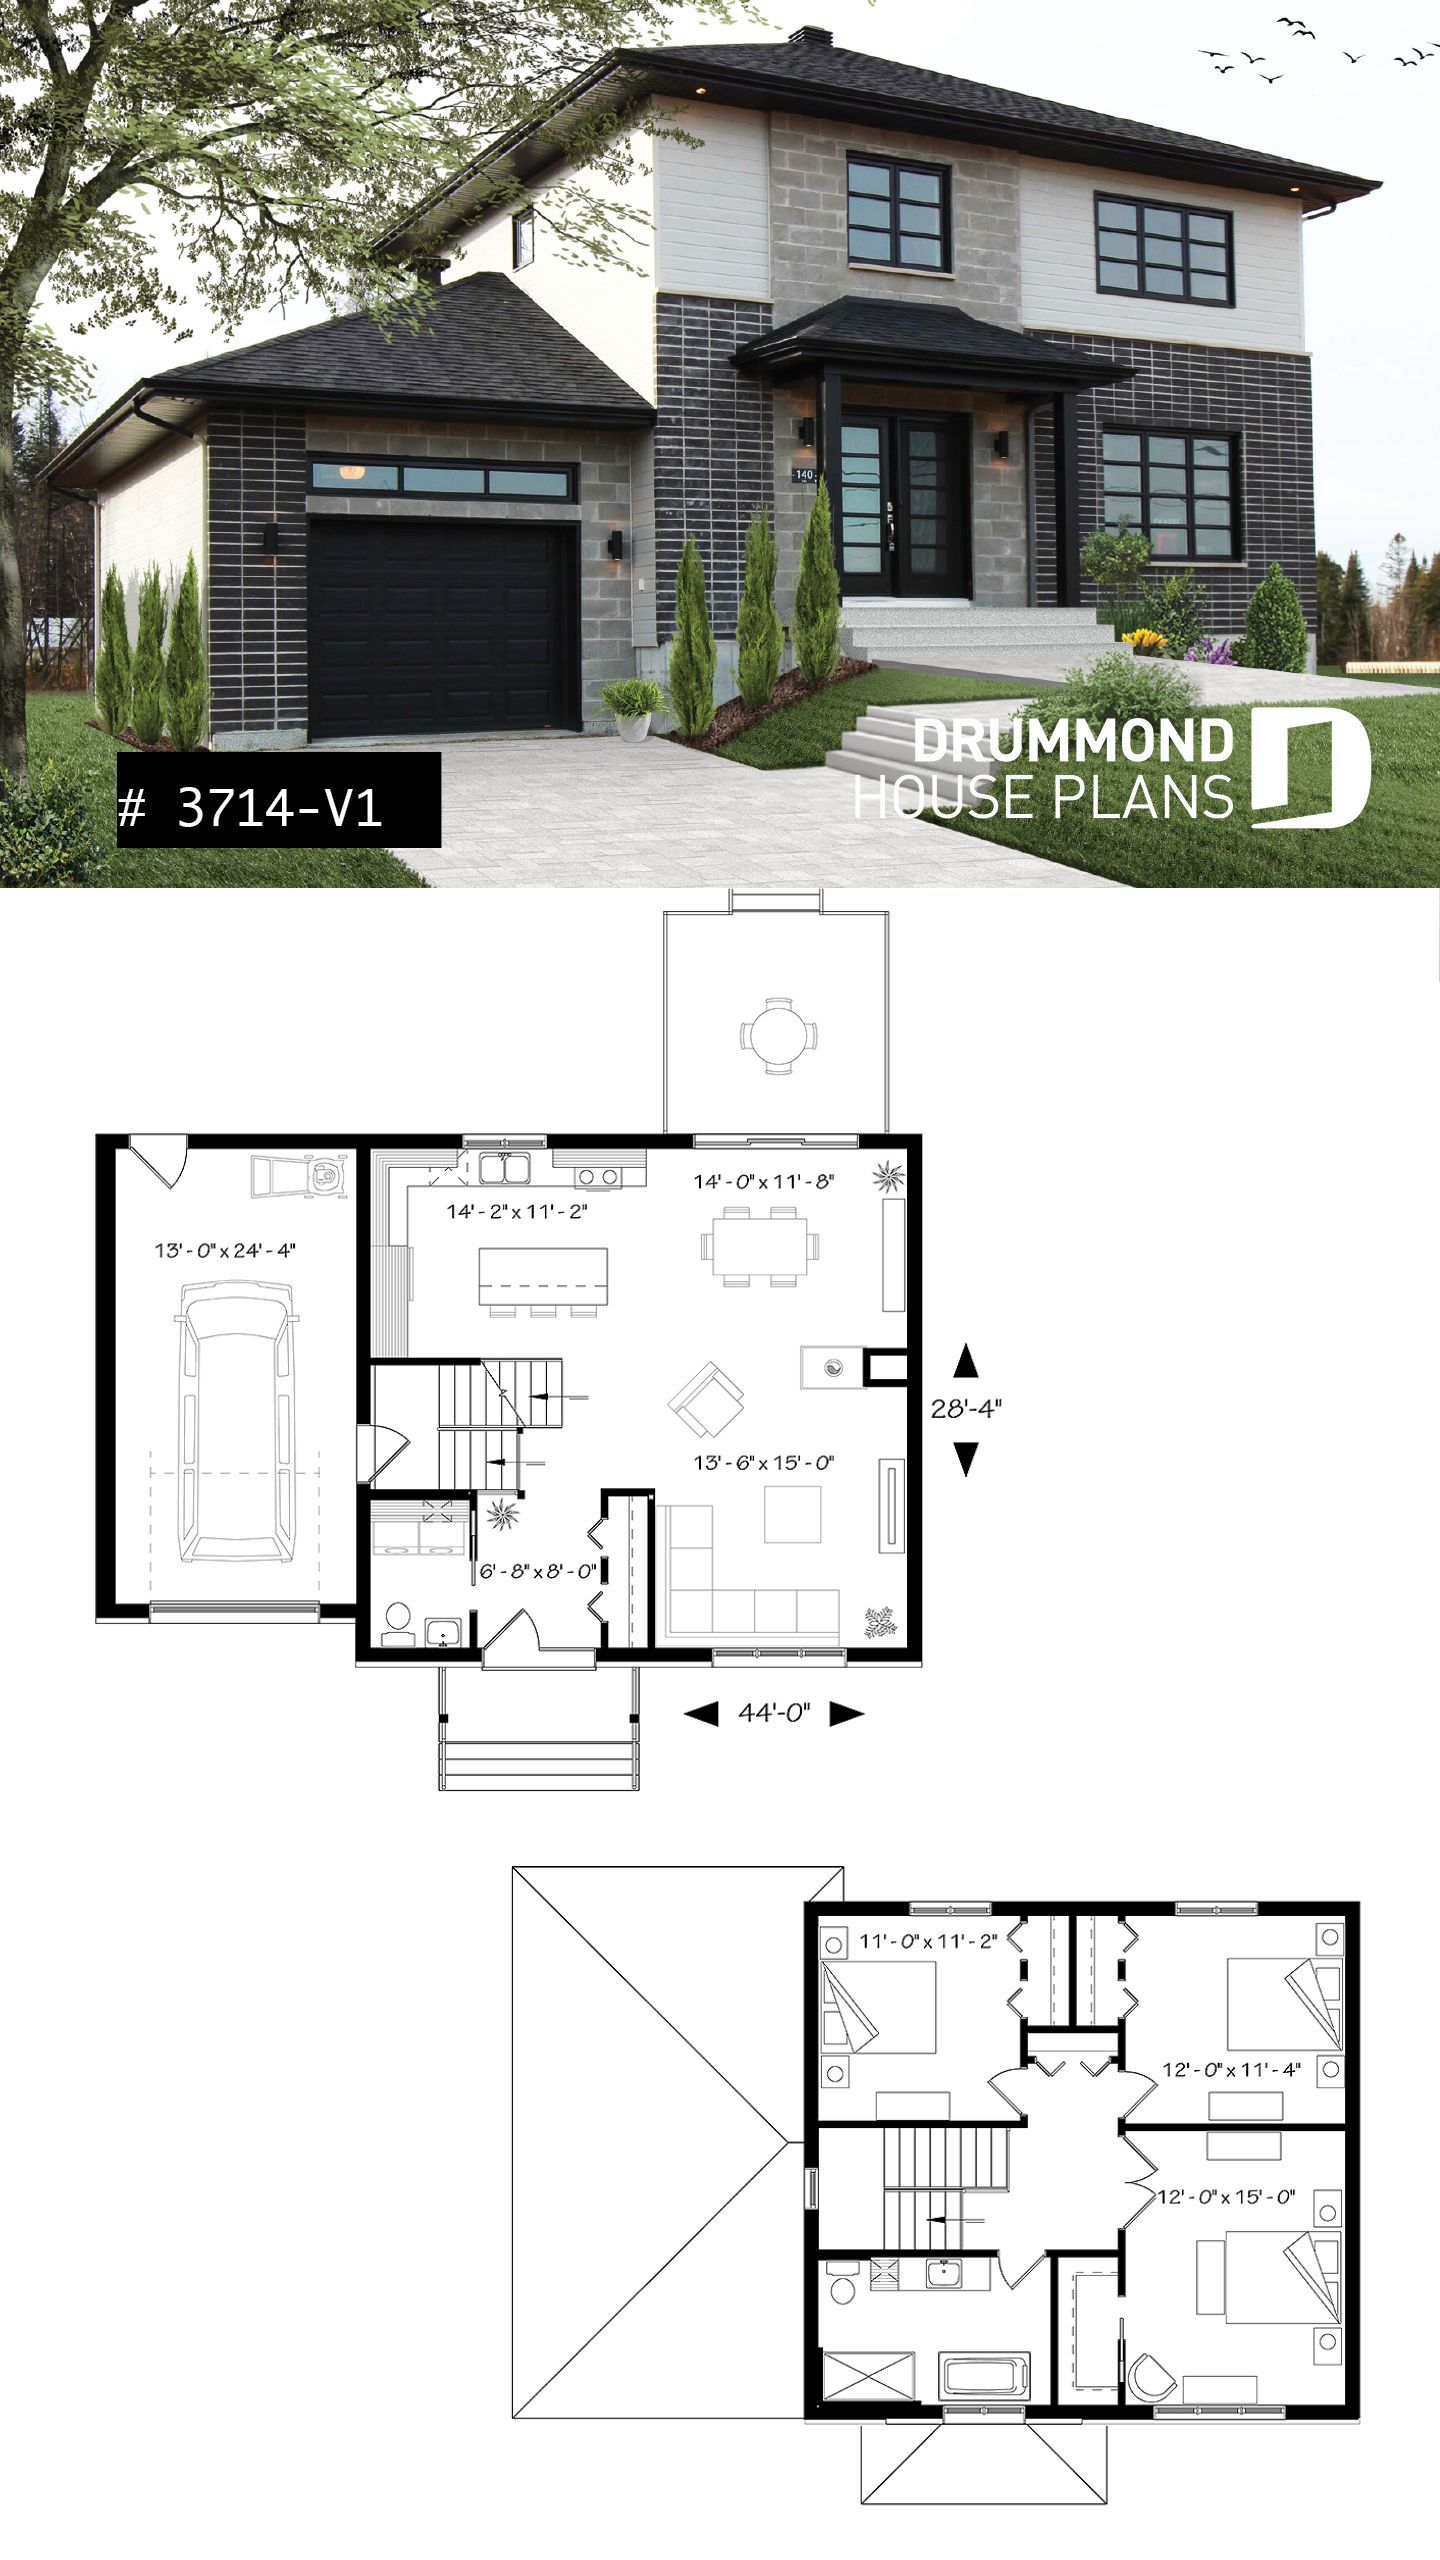 Two Story Contemporary Home Plan With Garage Open Dining And Living Concept With Central Projetos De Casa Contemporanea Planos De Casa Modernas Plano De Casa